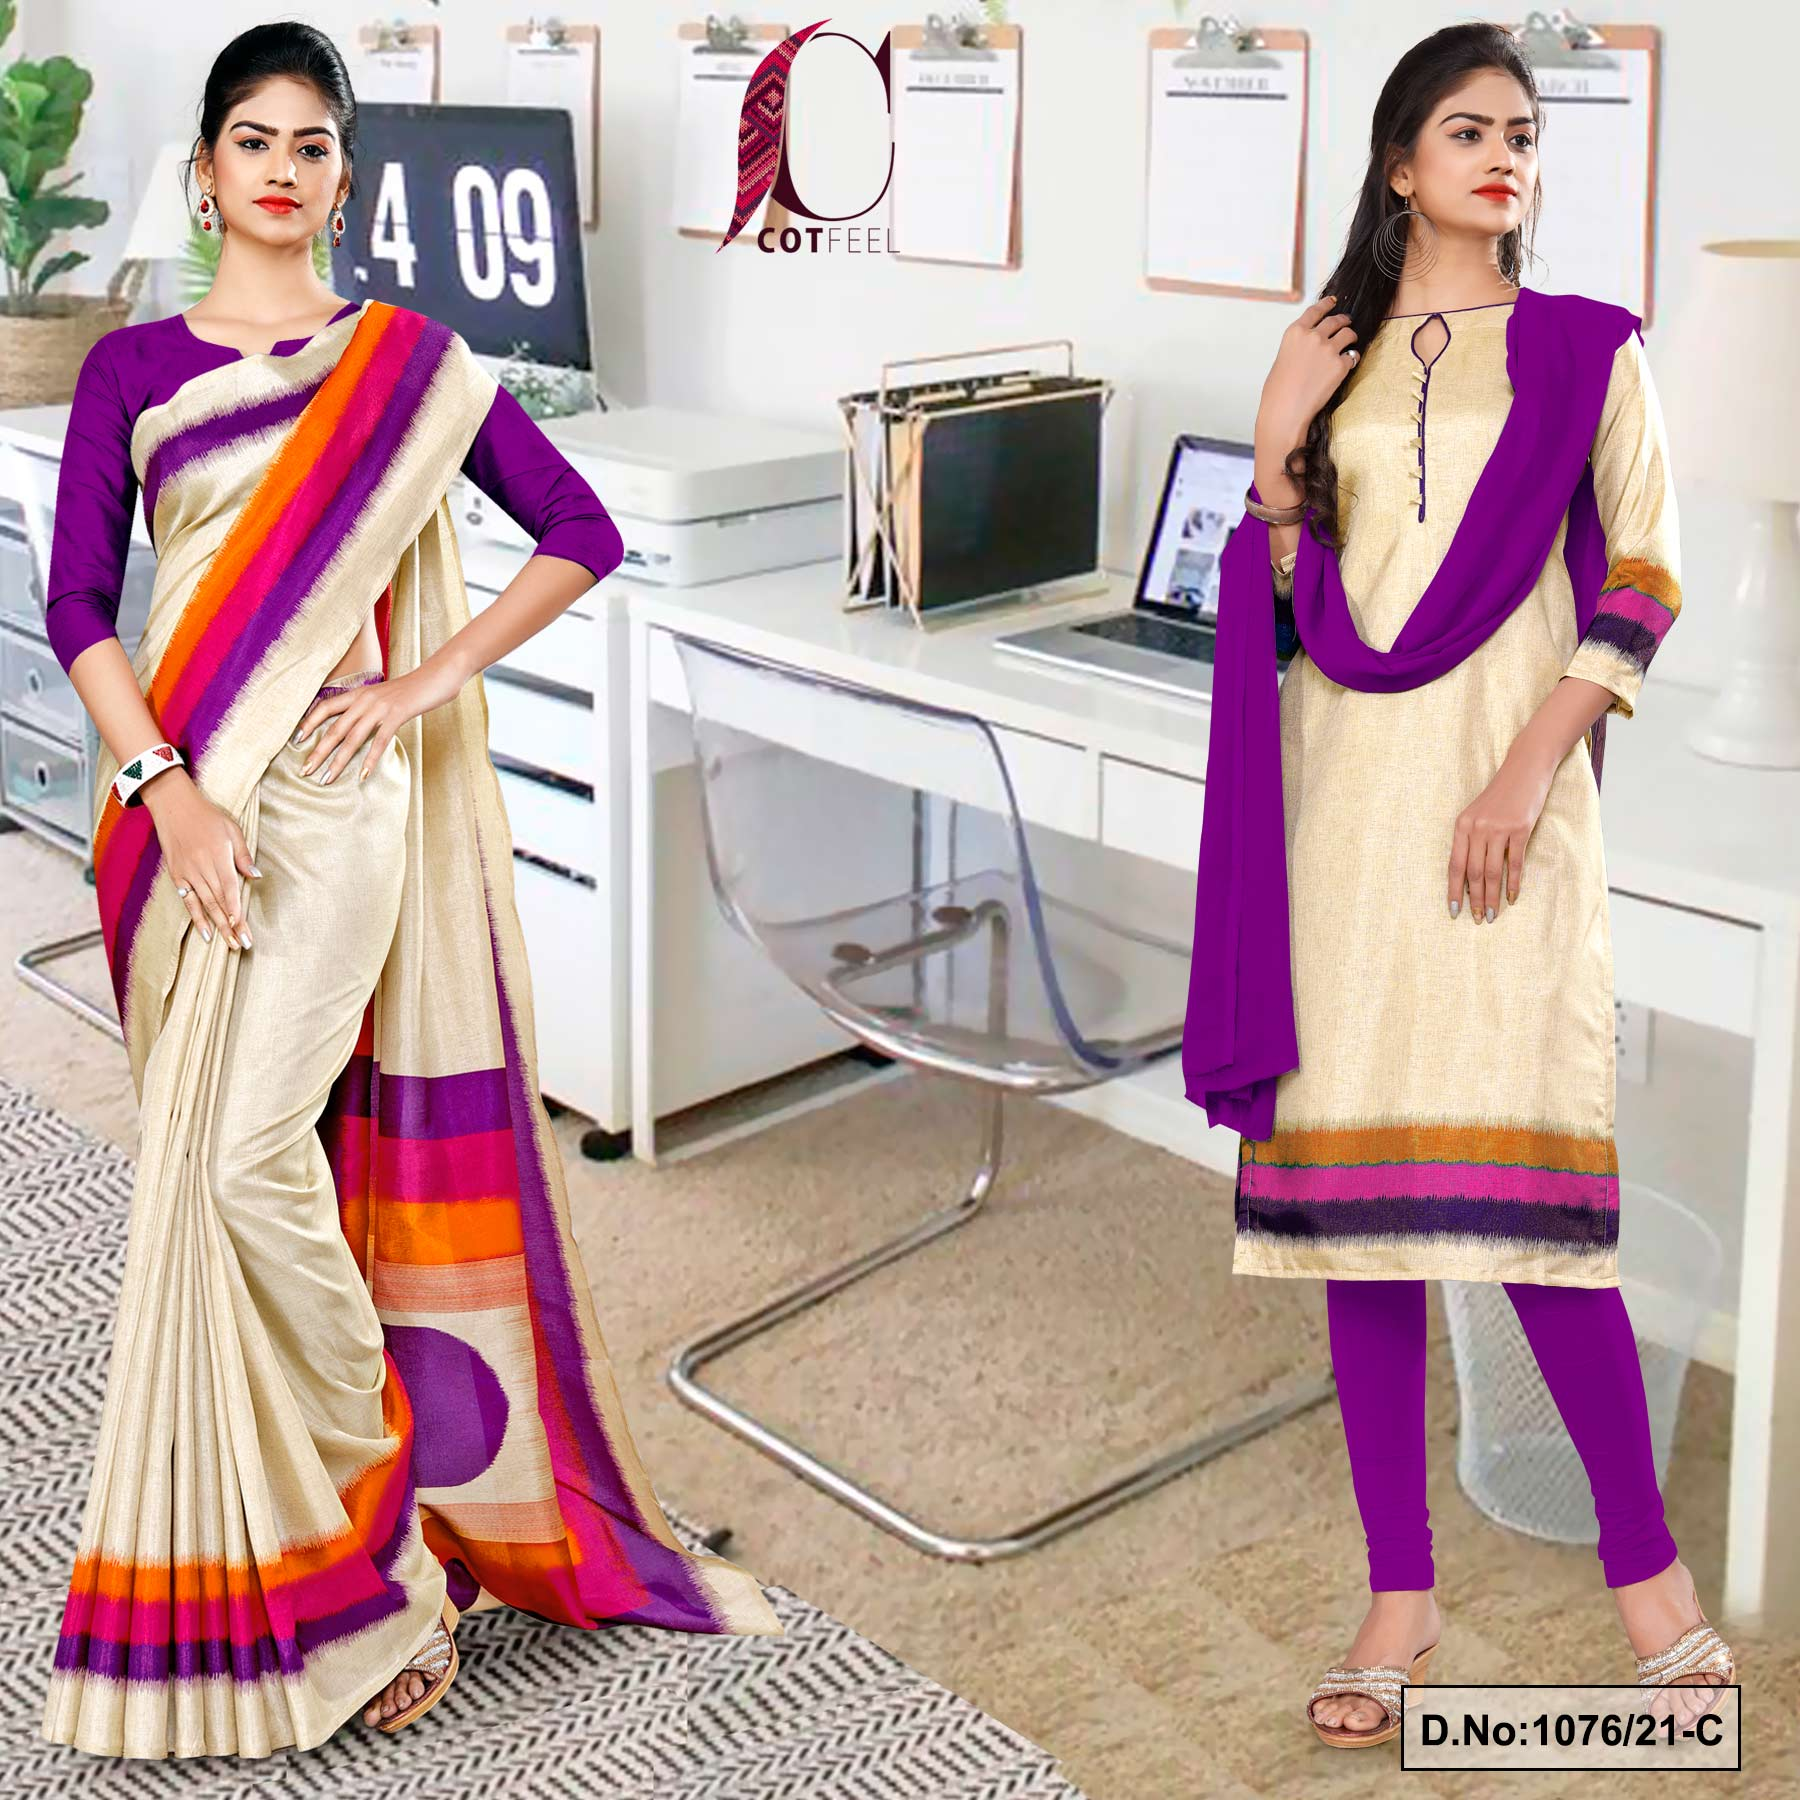 Beige Wine Gala Border Premium Polycotton CotFeel Saree Salwar Combo for Jewellery Showroom Uniform Sarees 1076